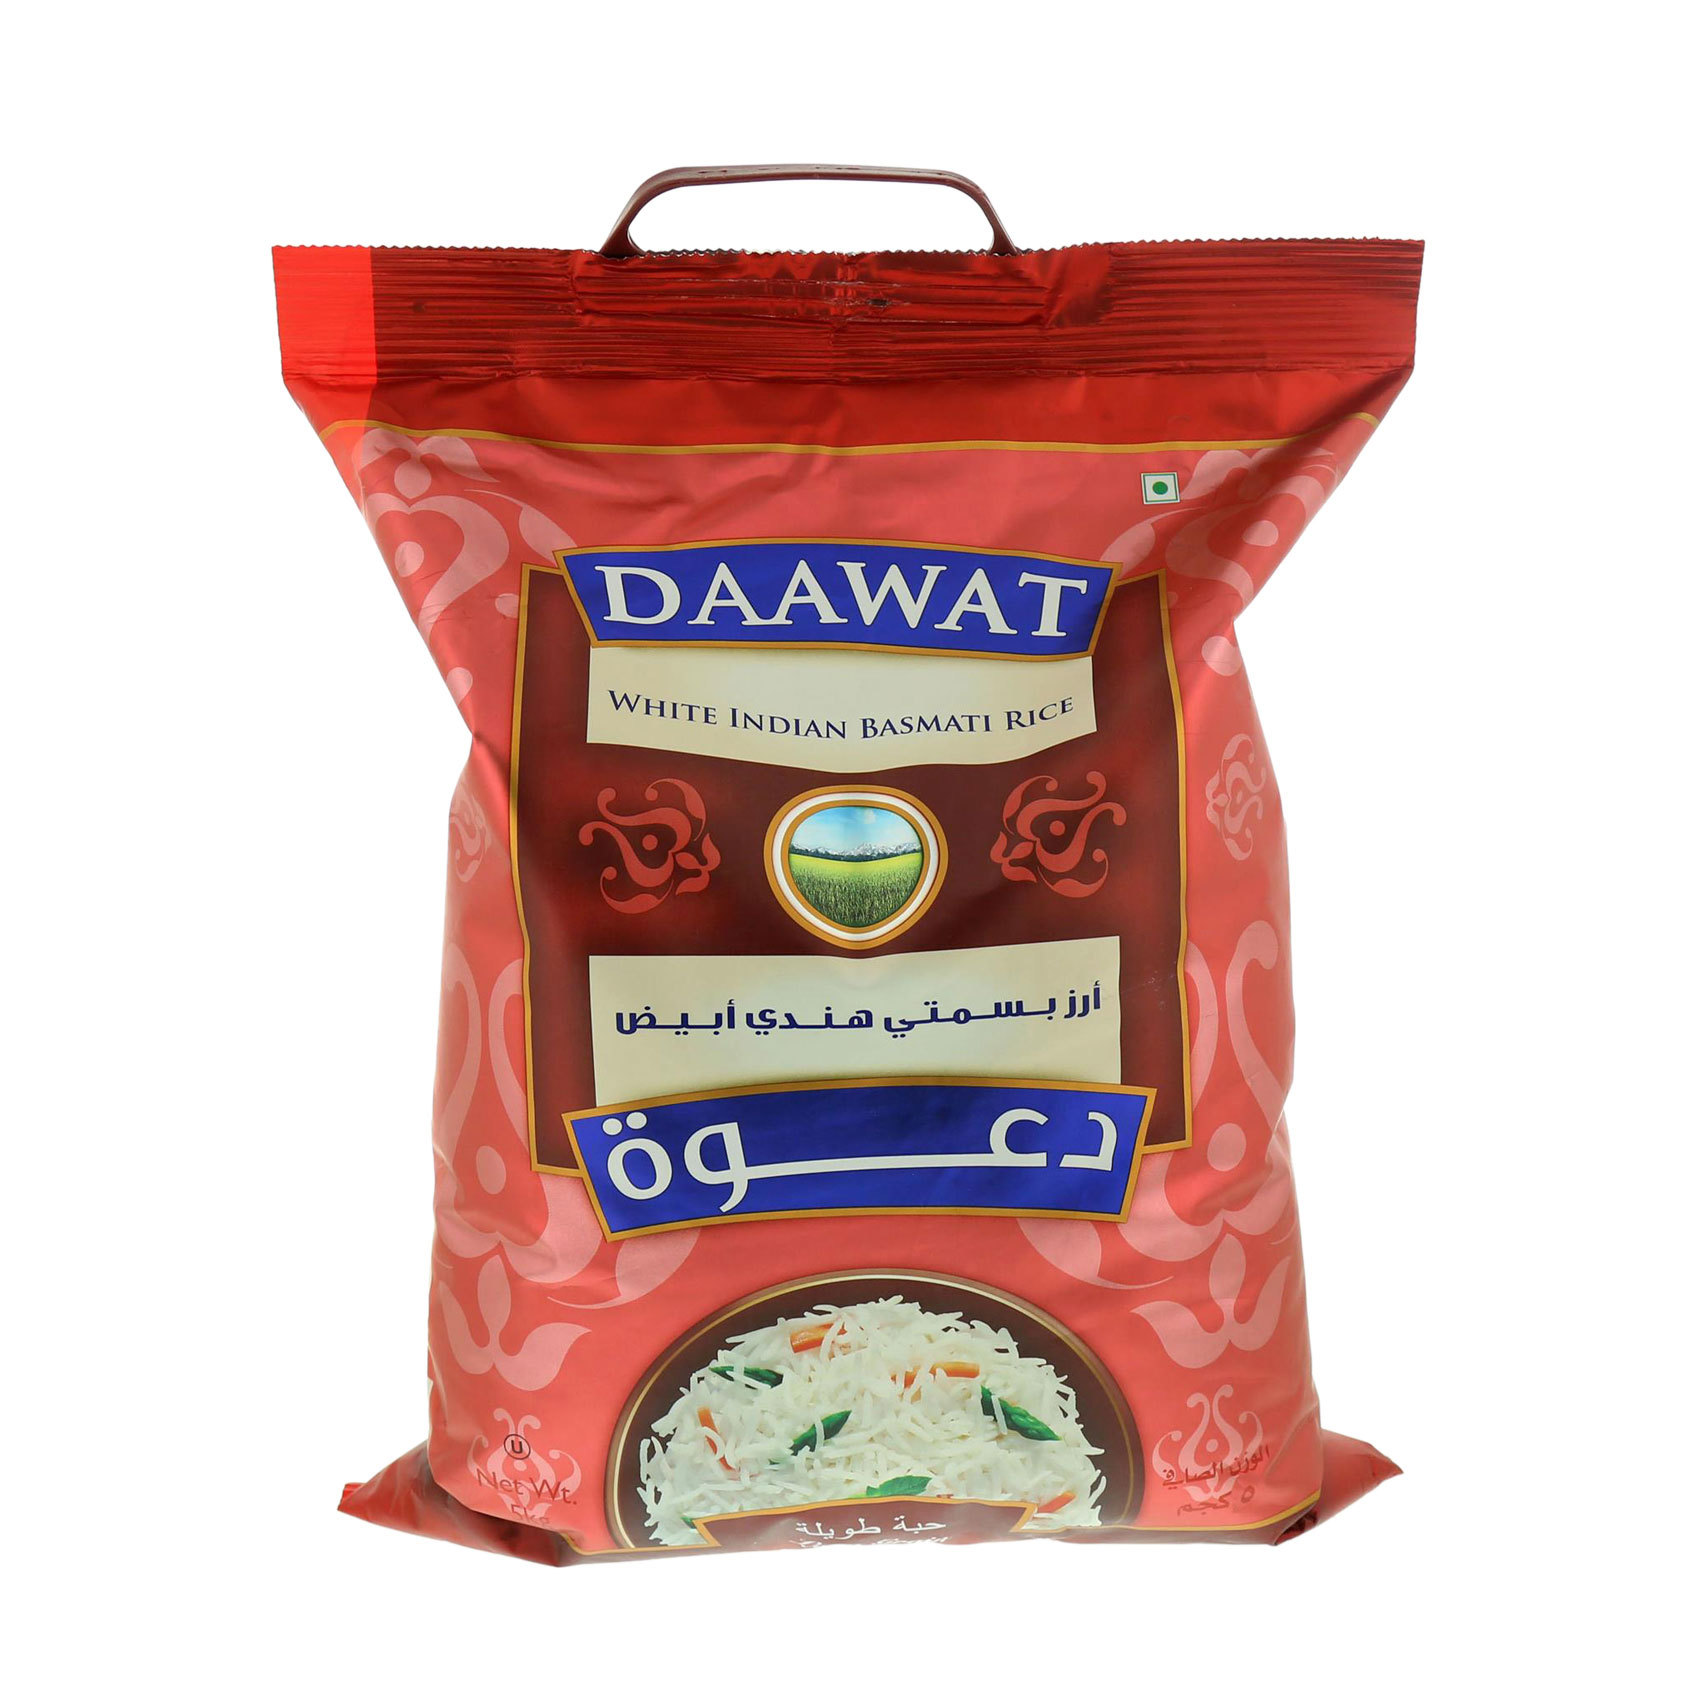 DAAWAT BASMATI RICE WHITE INDIAN 5K